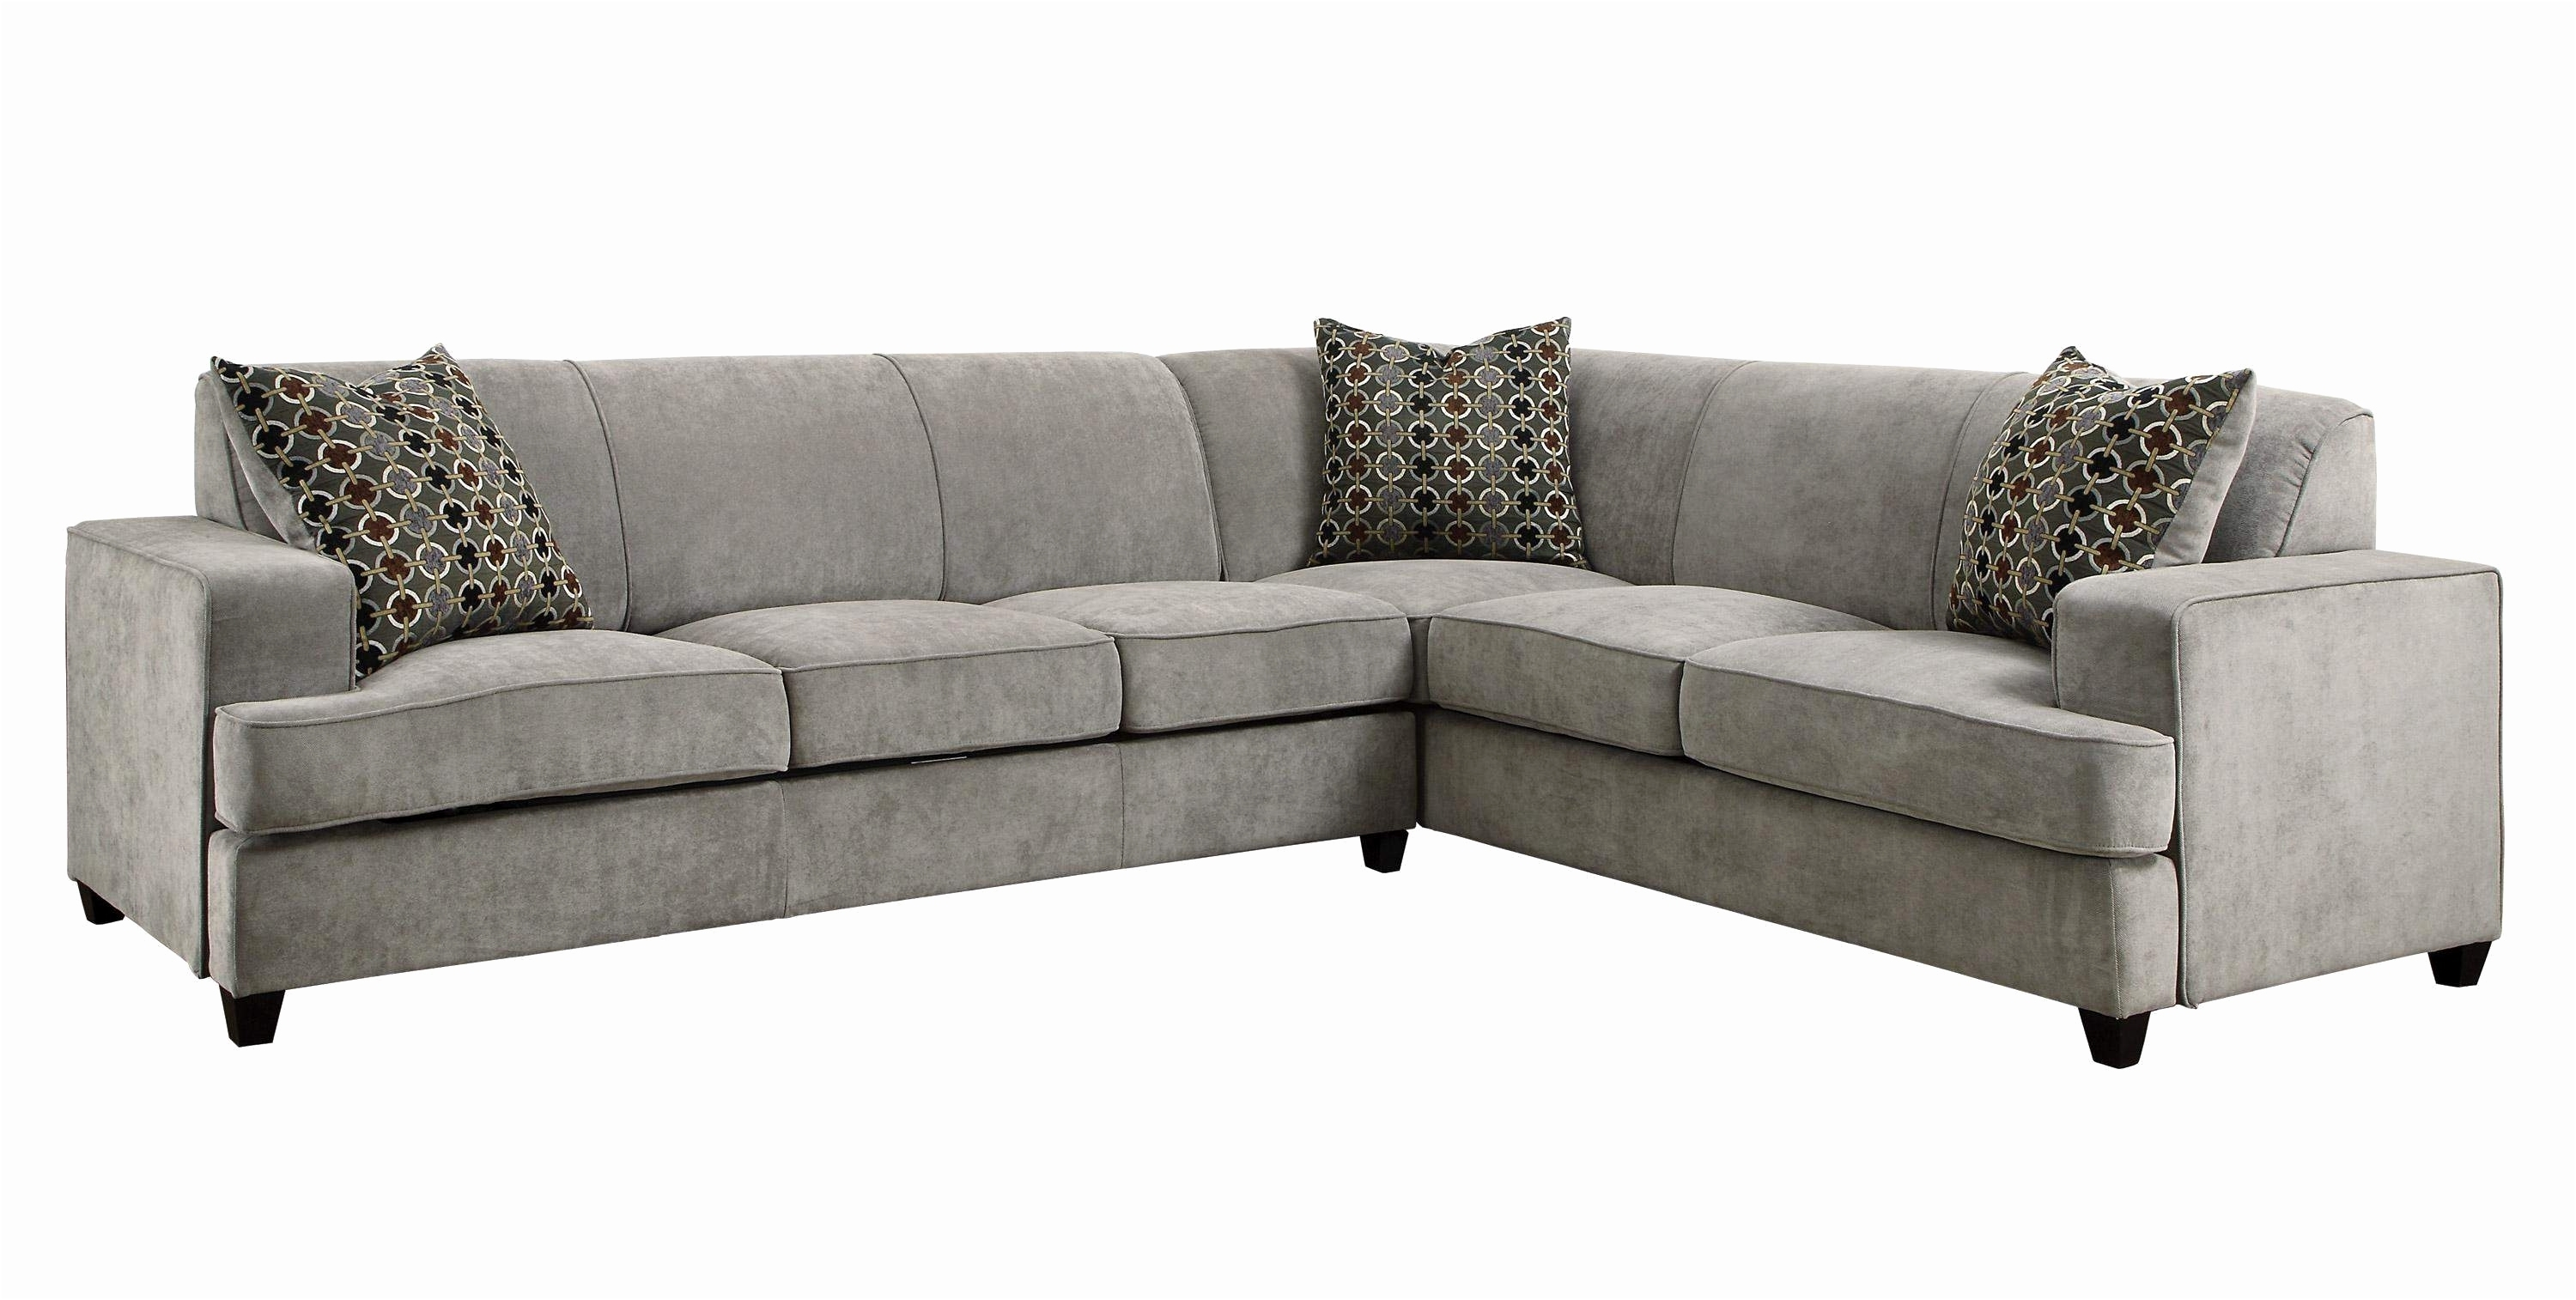 Ottawa Sale Sectional Sofas Intended For Most Popular Sectional Sofa Beds Ottawa With Storage Ikea Leather Vancouver For (View 6 of 15)